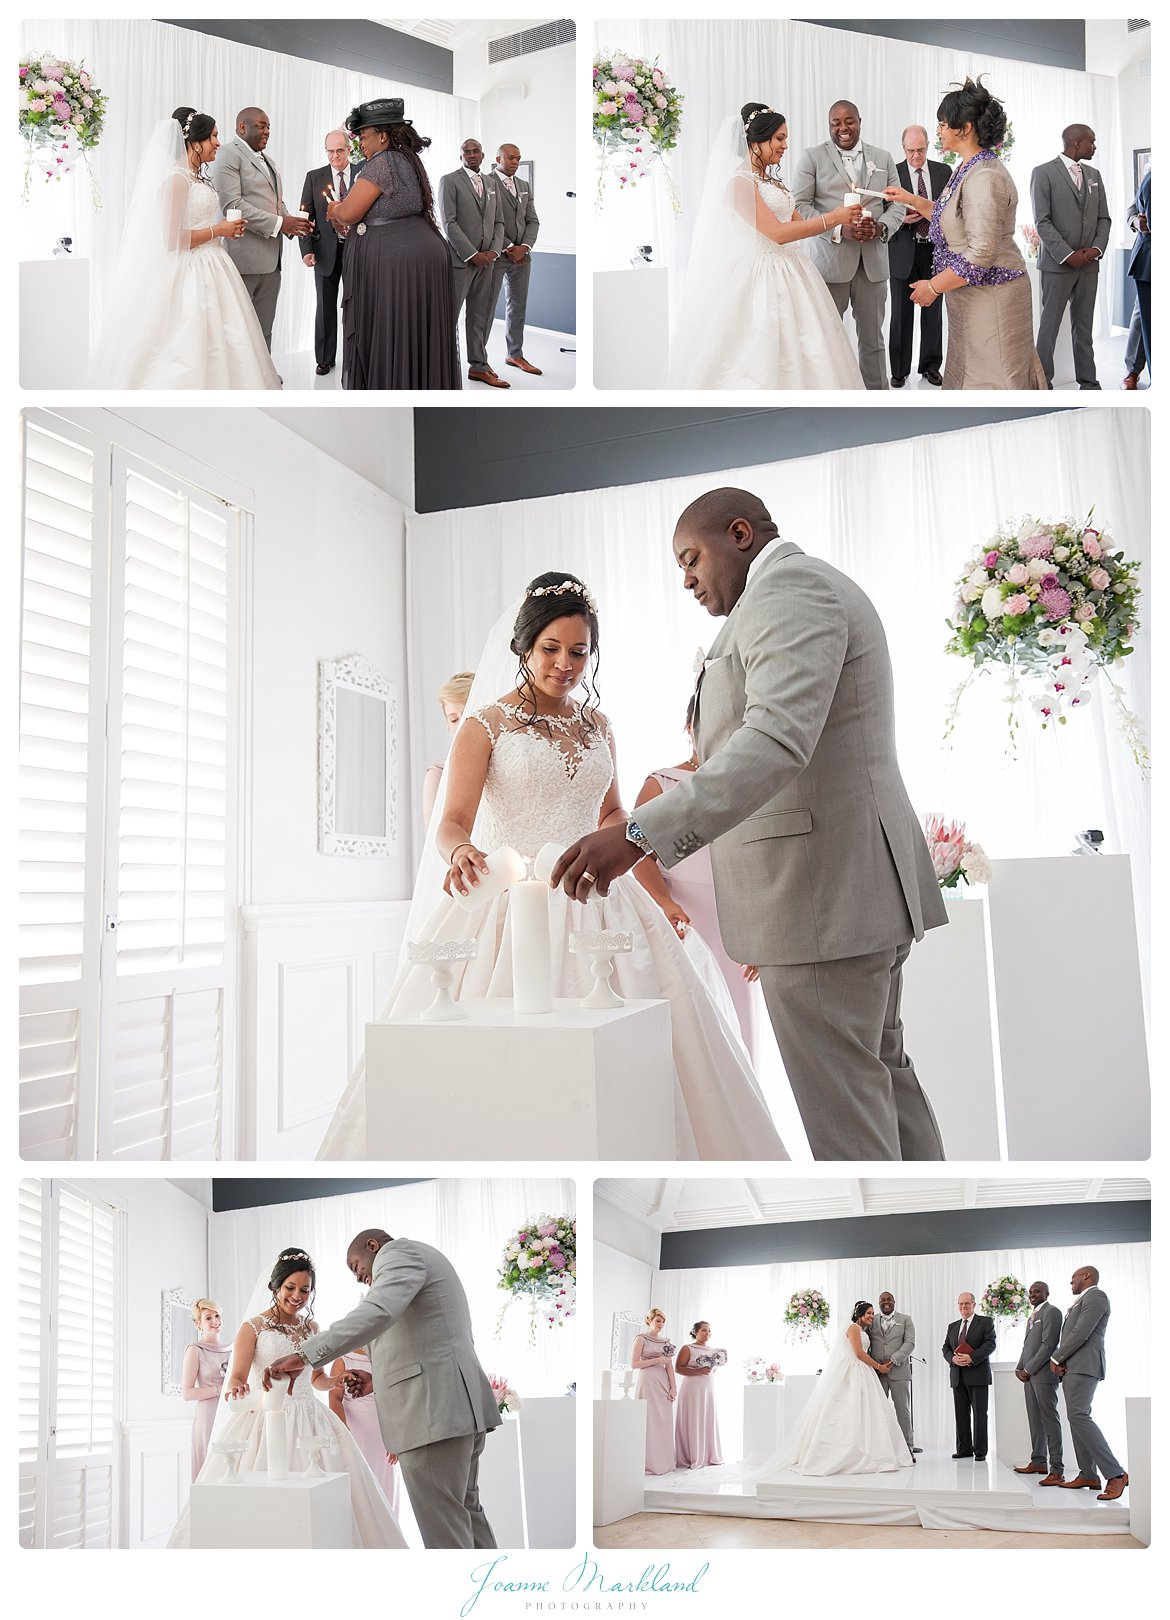 Val_de_vie_wedding_joanne_markland_photography_paarl-030